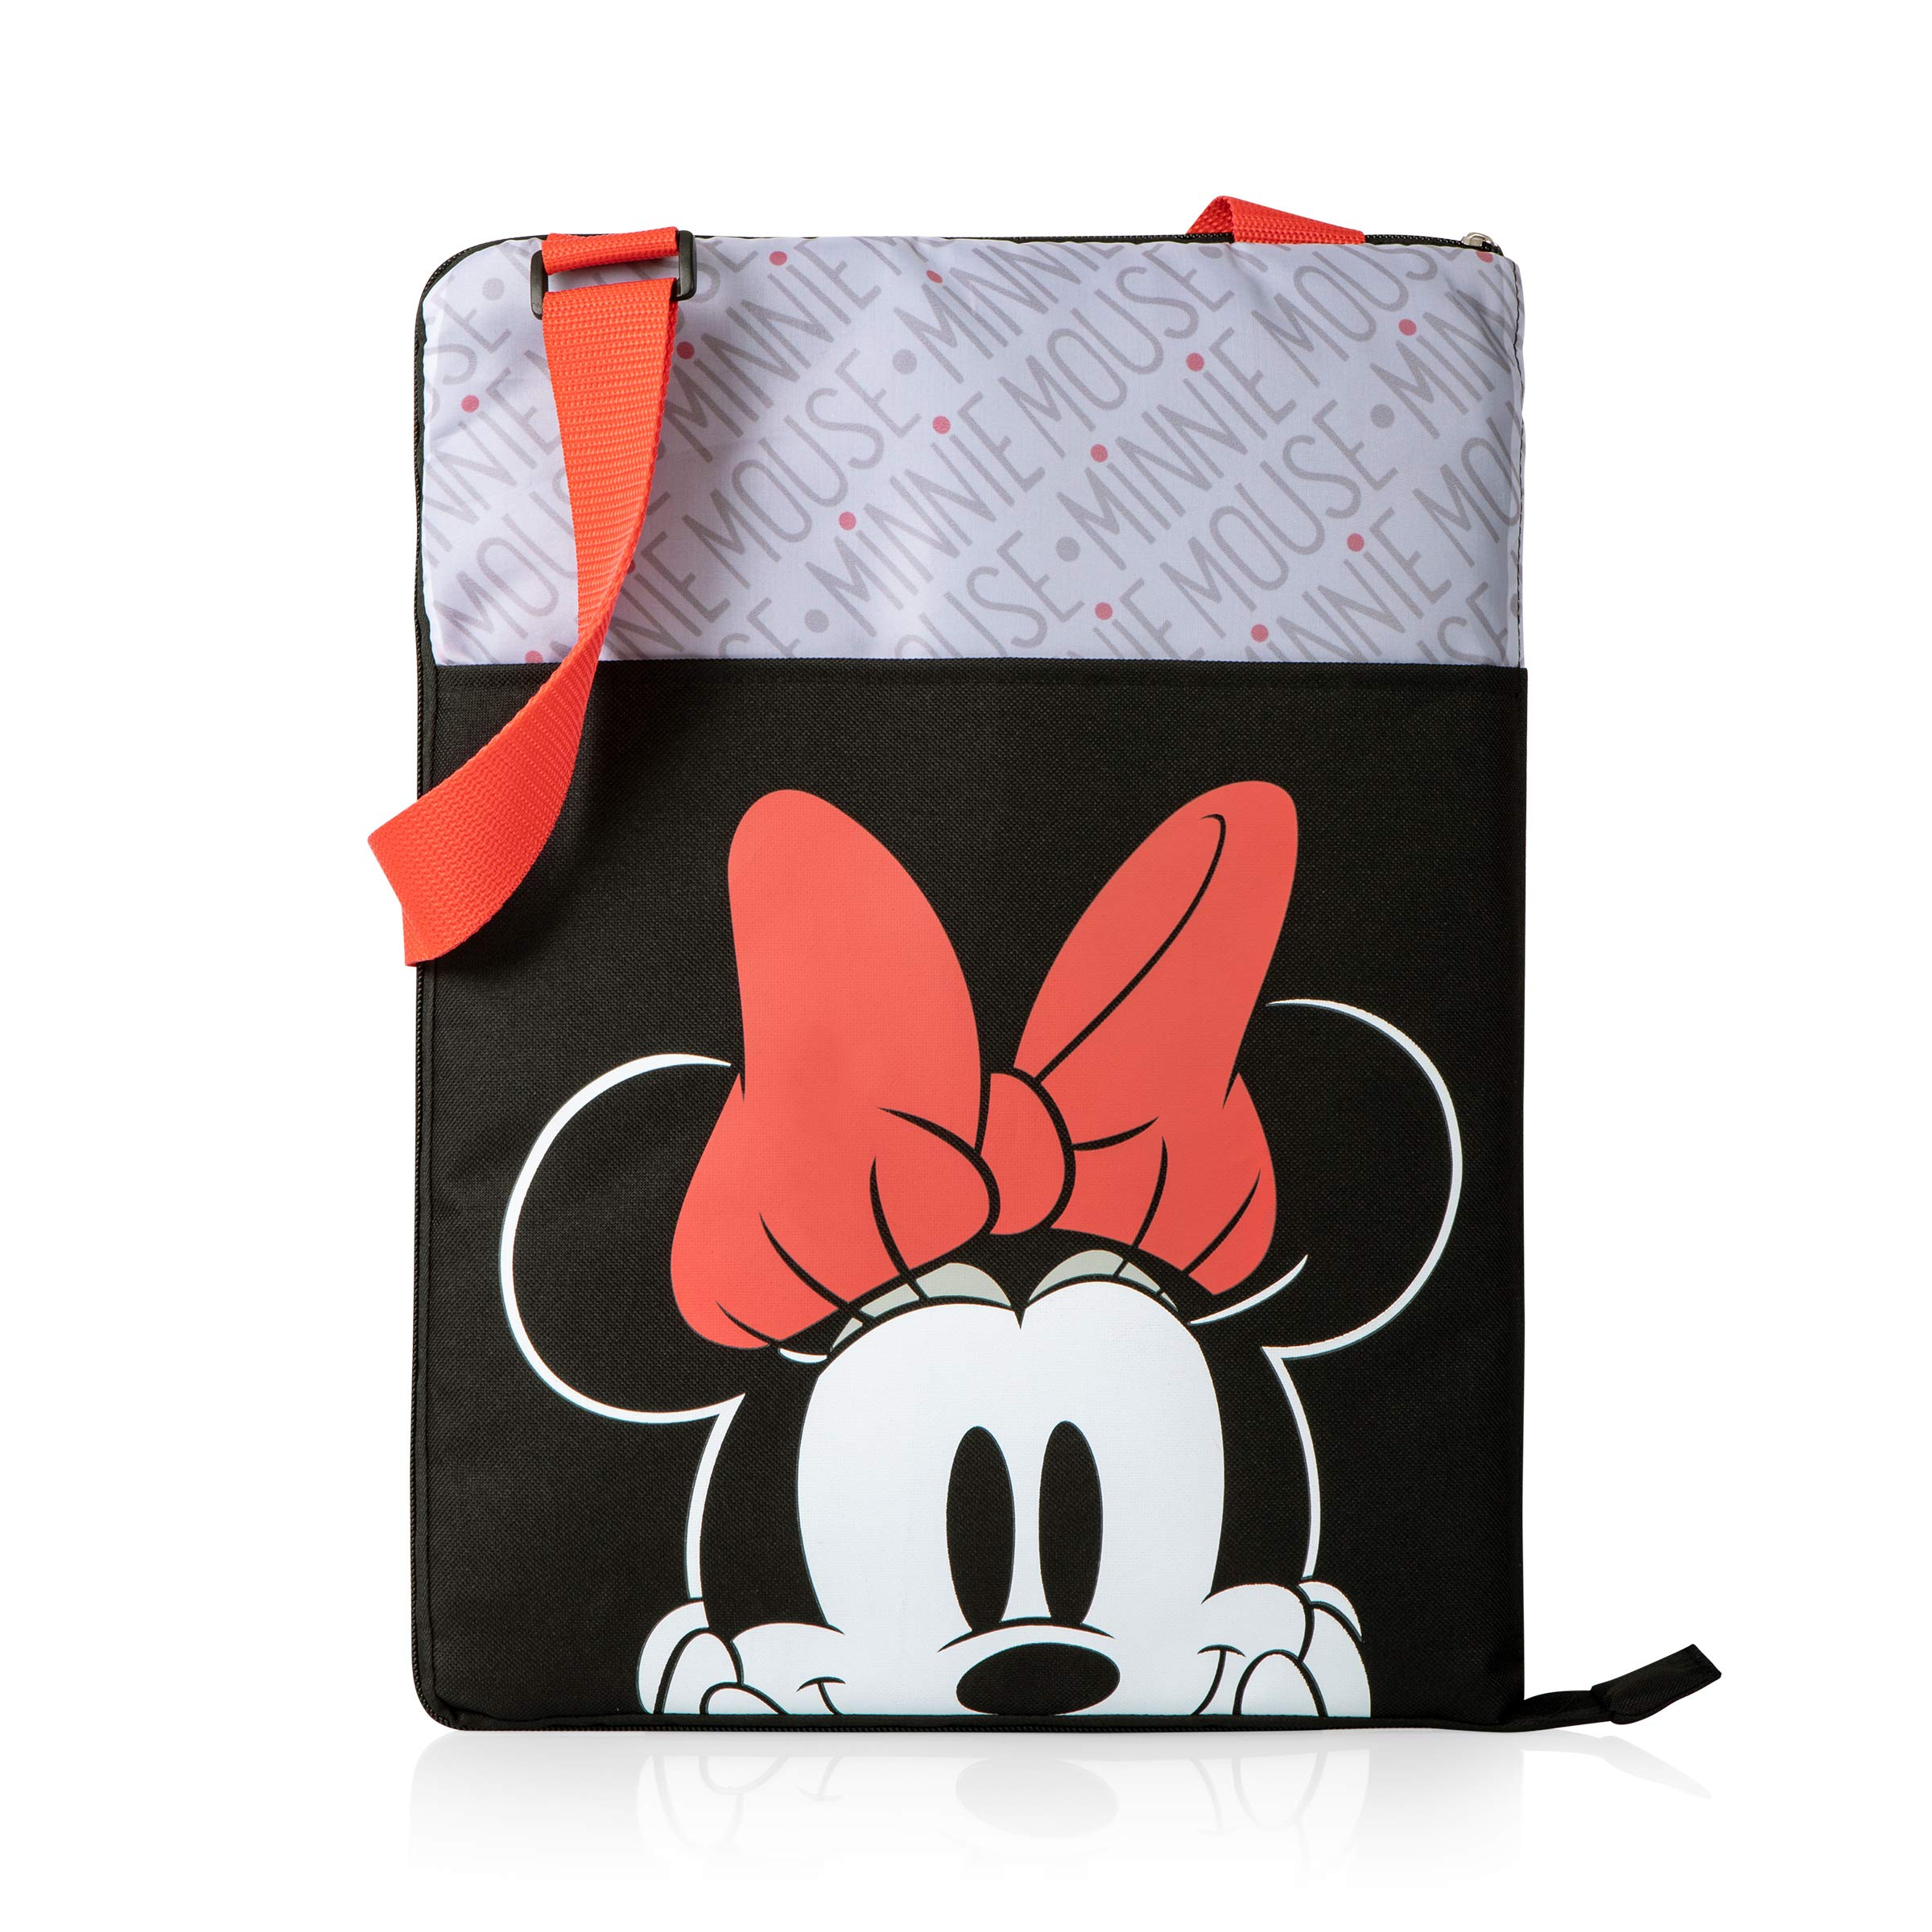 Disney Classics Minnie Mouse Vista Outdoor Picnic Blanket Tote by PICNIC TIME